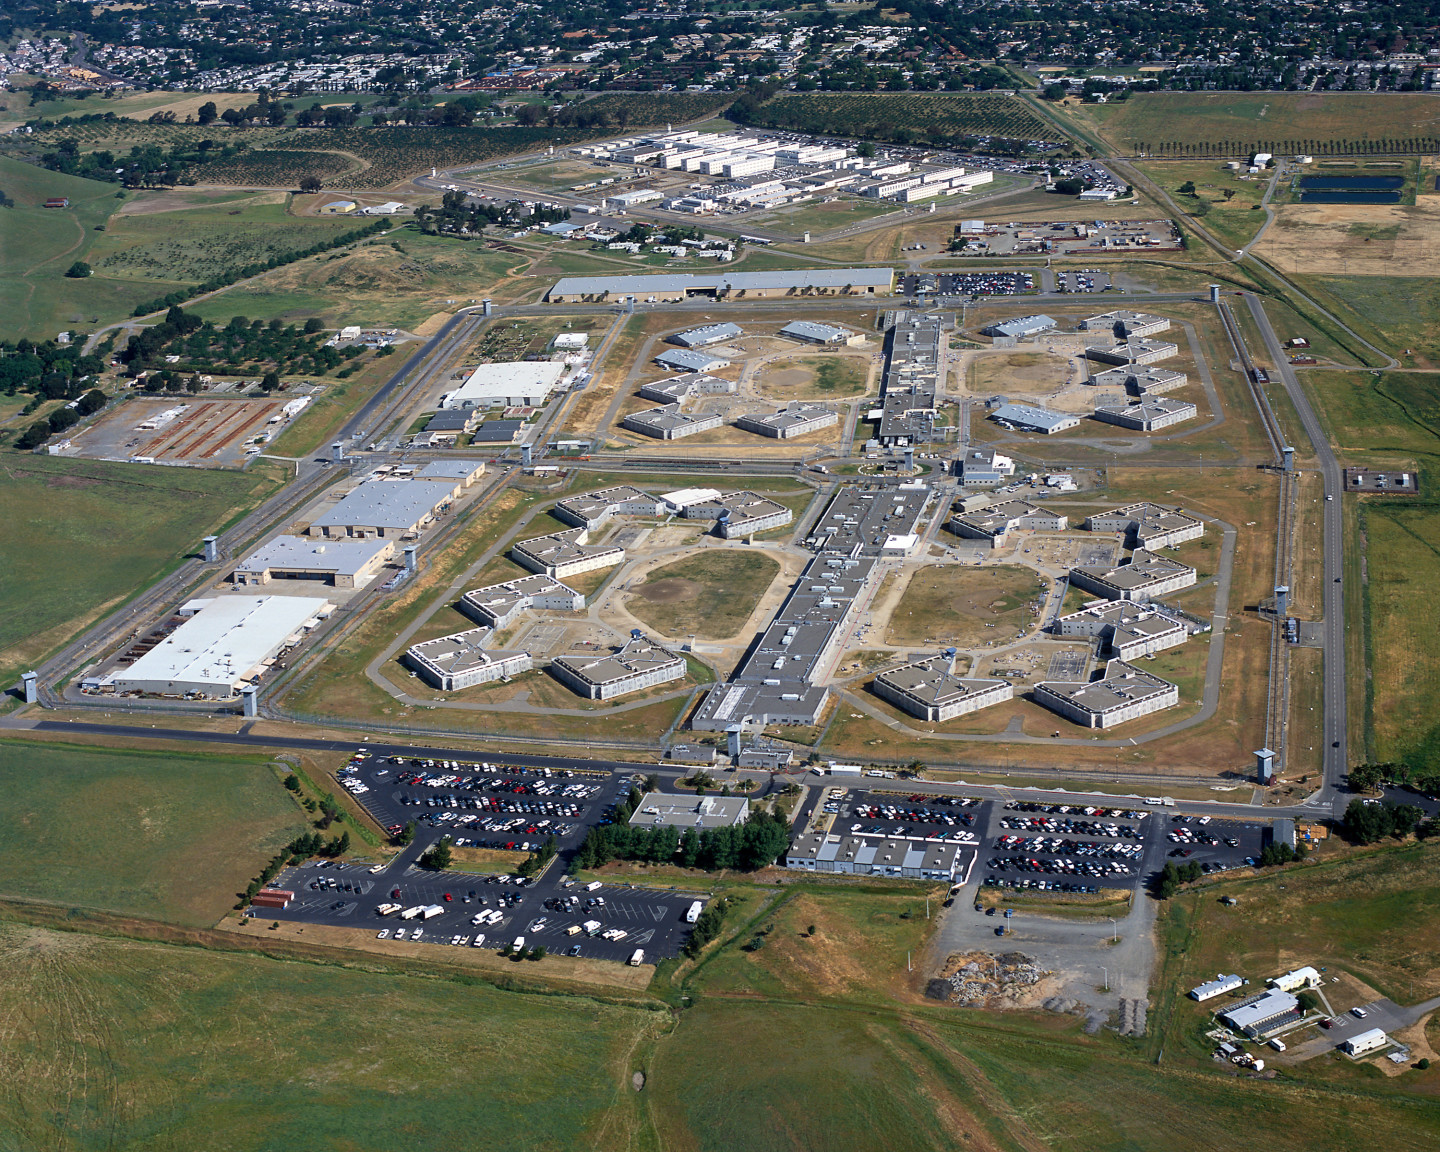 Grisly Inmate Death at Solano Prison